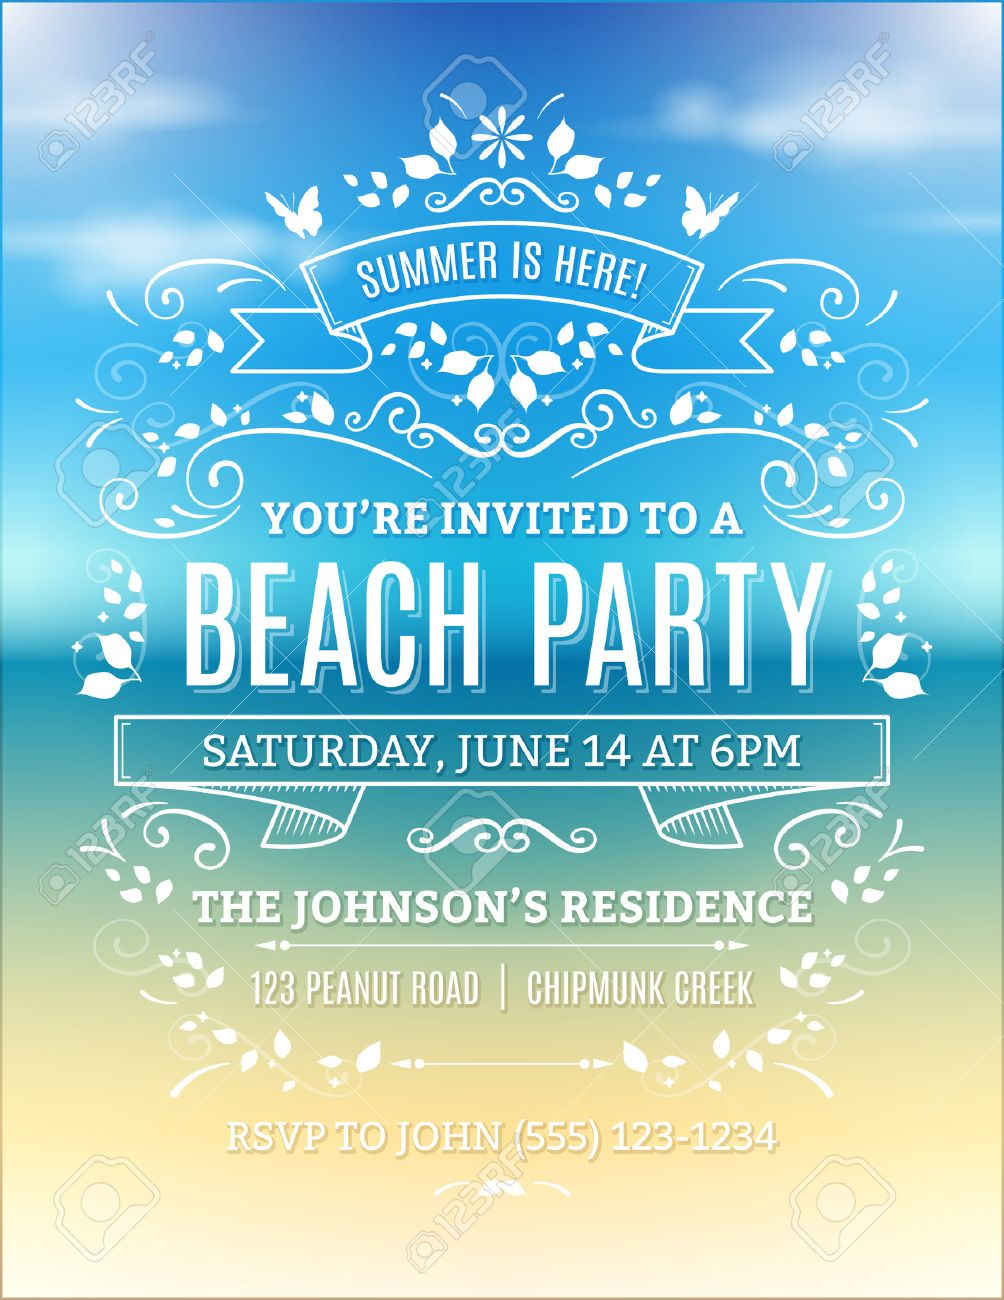 beach party invitation with white ornaments and ribbons on a